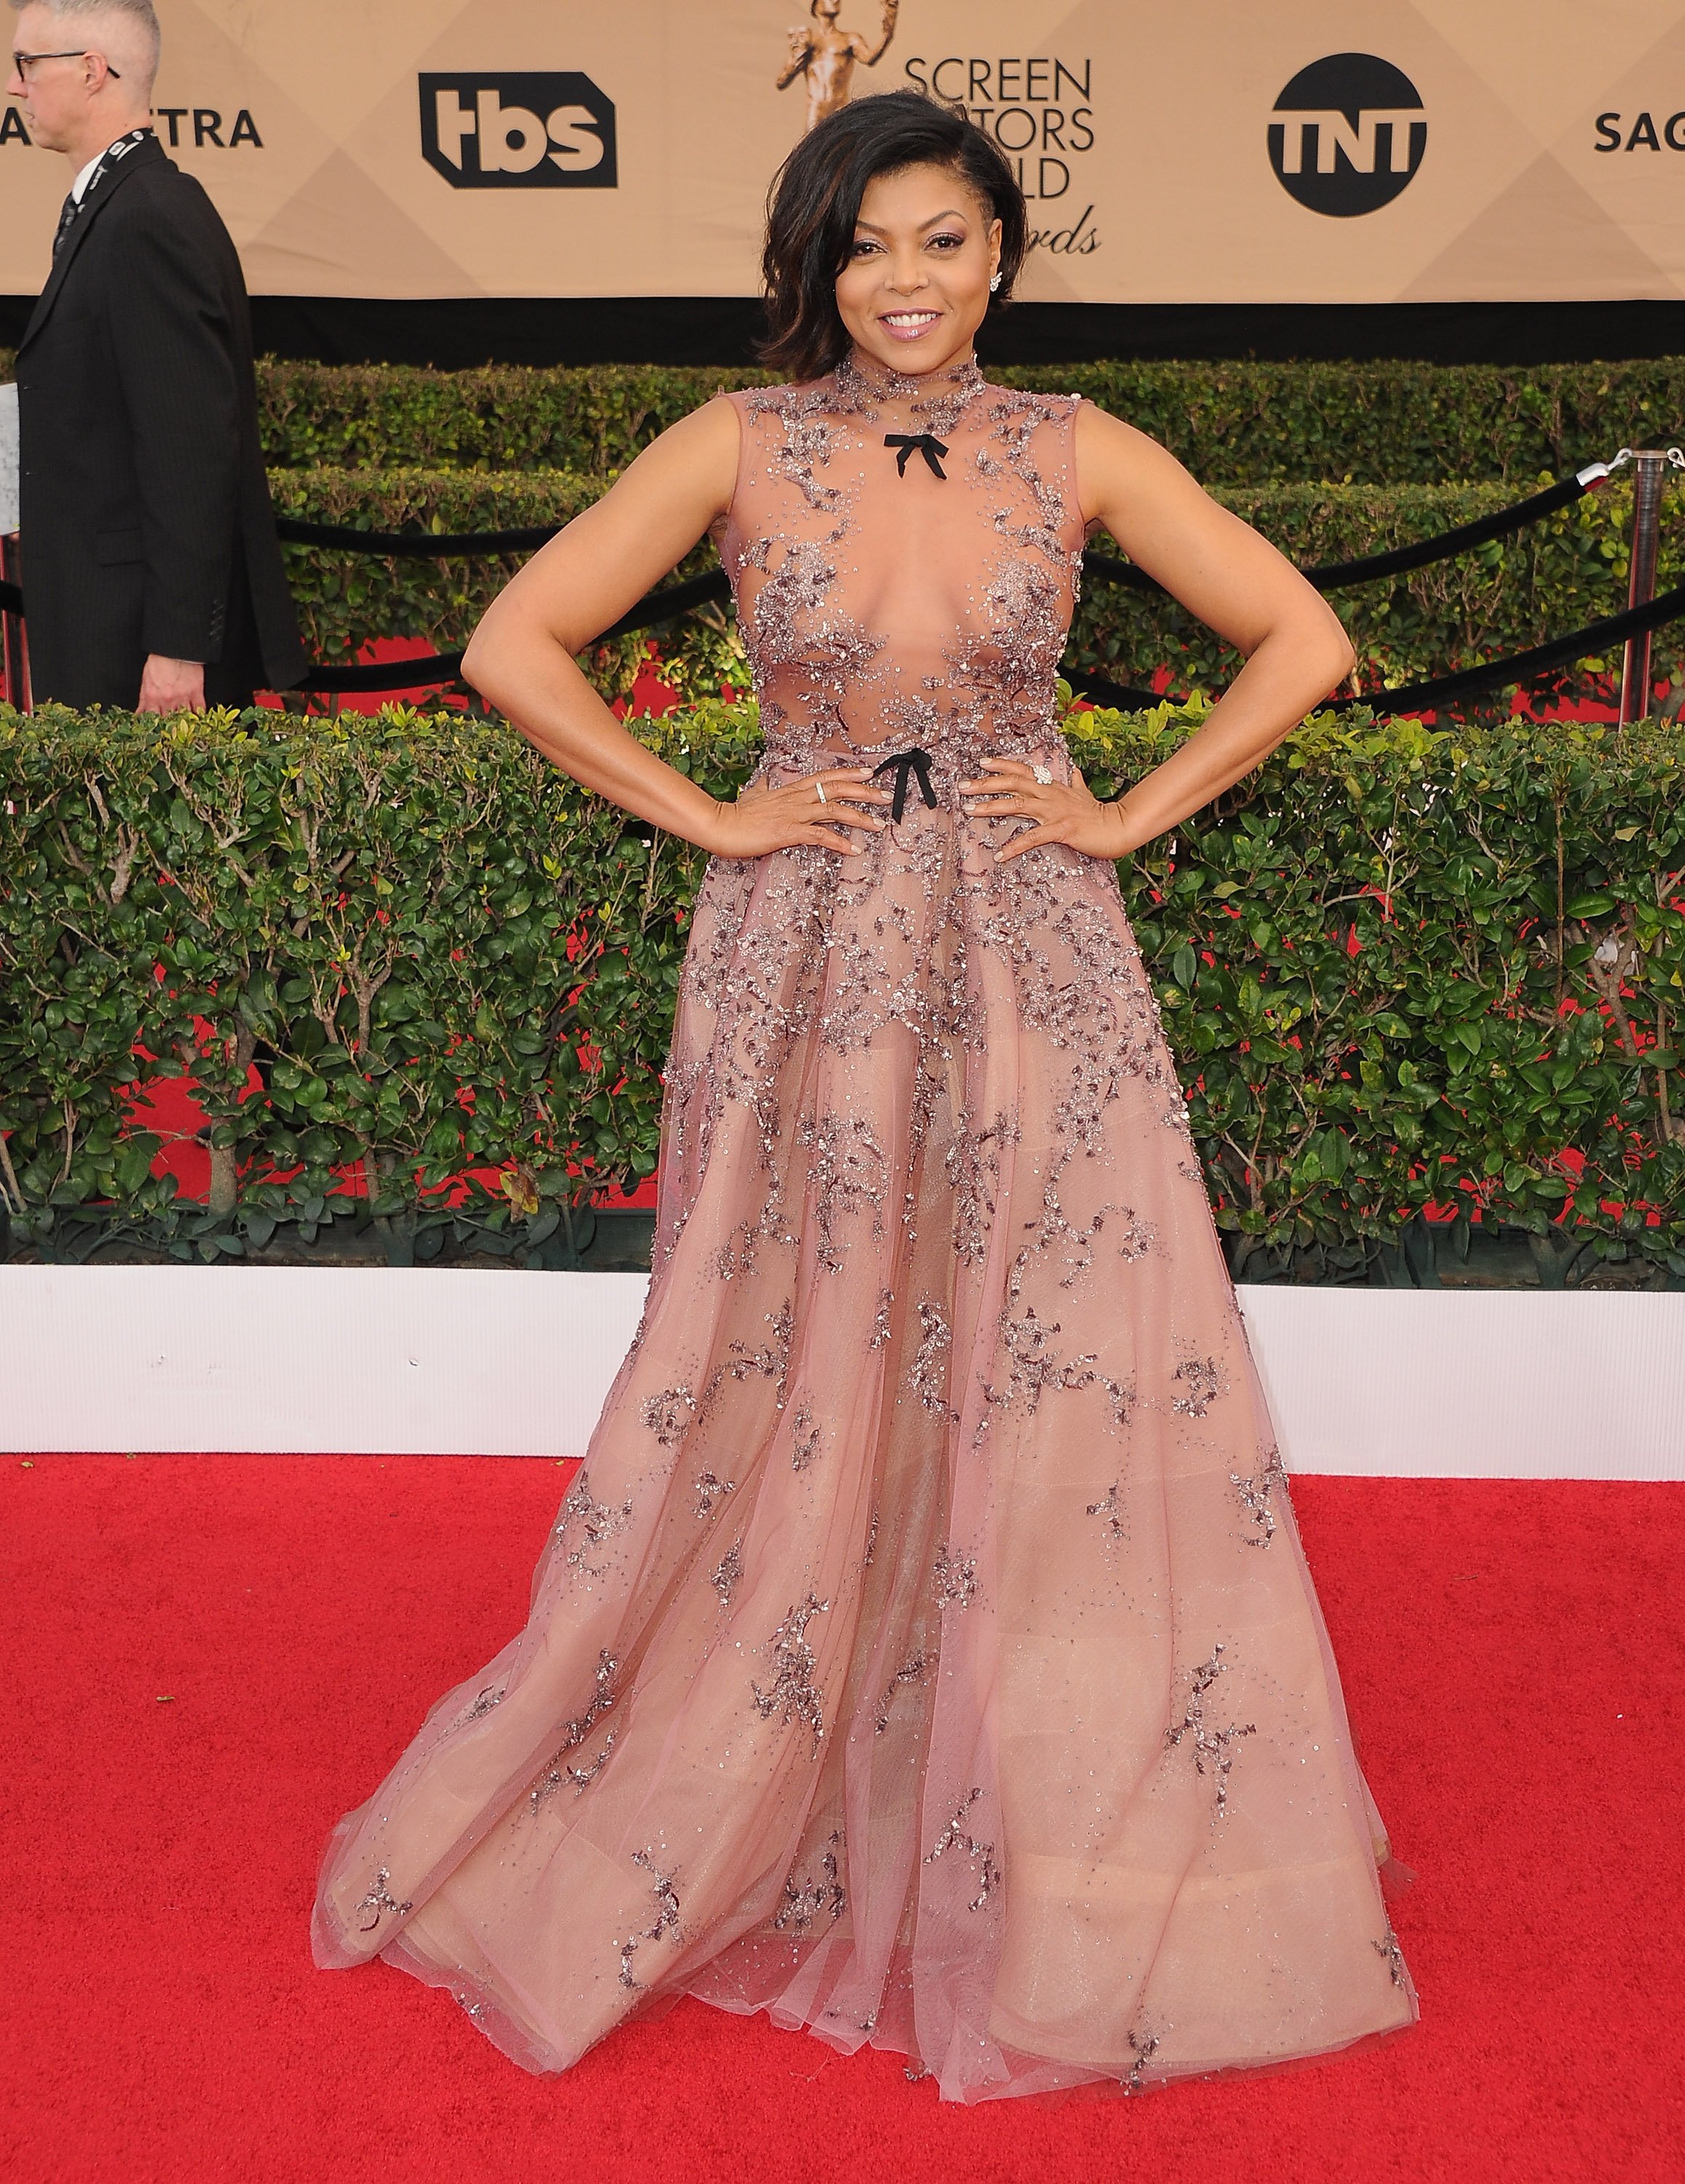 LOS ANGELES, CA - JANUARY 29:  Actress Taraji P. Henson arrives at the 23rd Annual Screen Actors Guild Awards at The Shrine Expo Hall on January 29, 2017 in Los Angeles, California.  (Photo by Jon Kopaloff/FilmMagic)